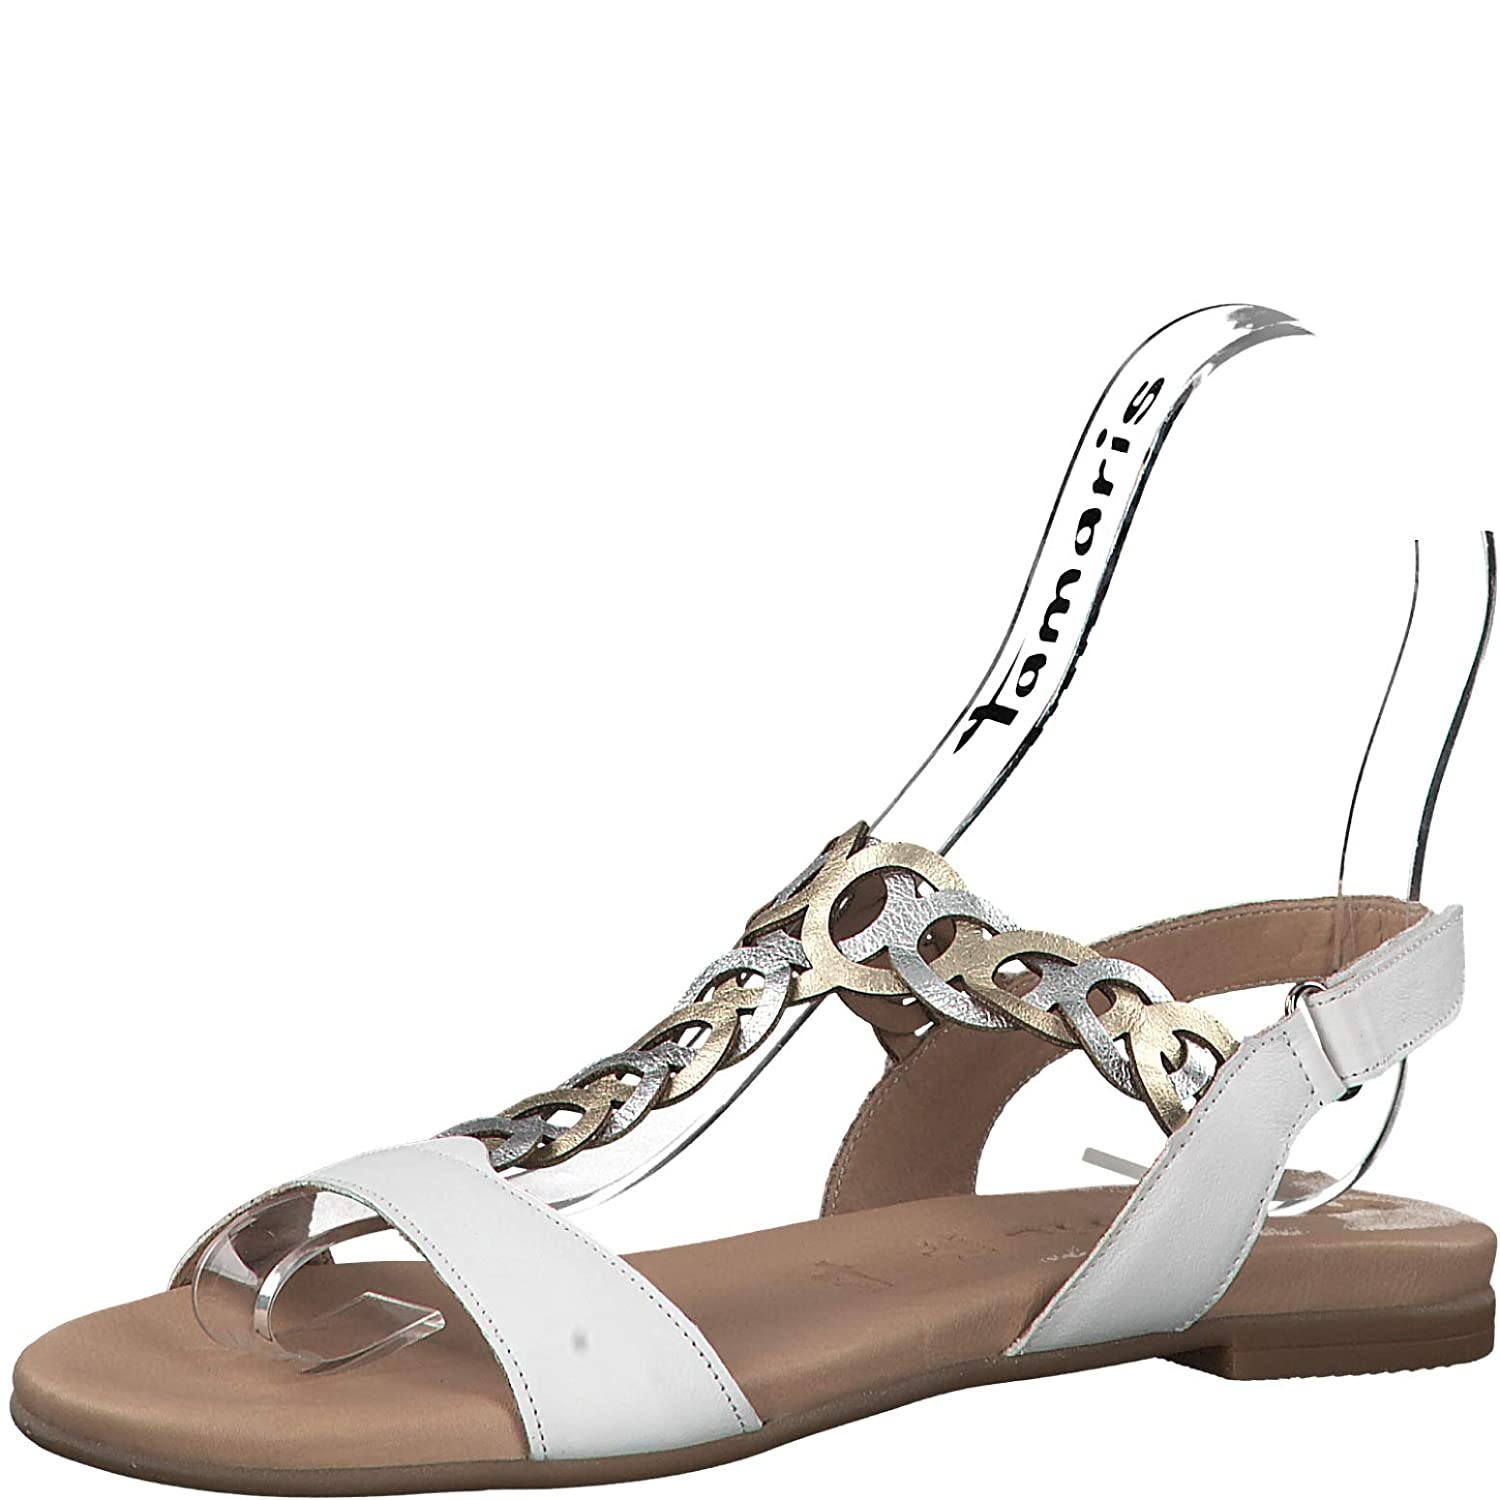 hot sale online cda6a 1c5d1 Tamaris 1-1-28127-22 Women Strappy Sandals,Sandal,Strappy Sandals,Summer  Shoes,Comfortable,Flat,Touch-IT